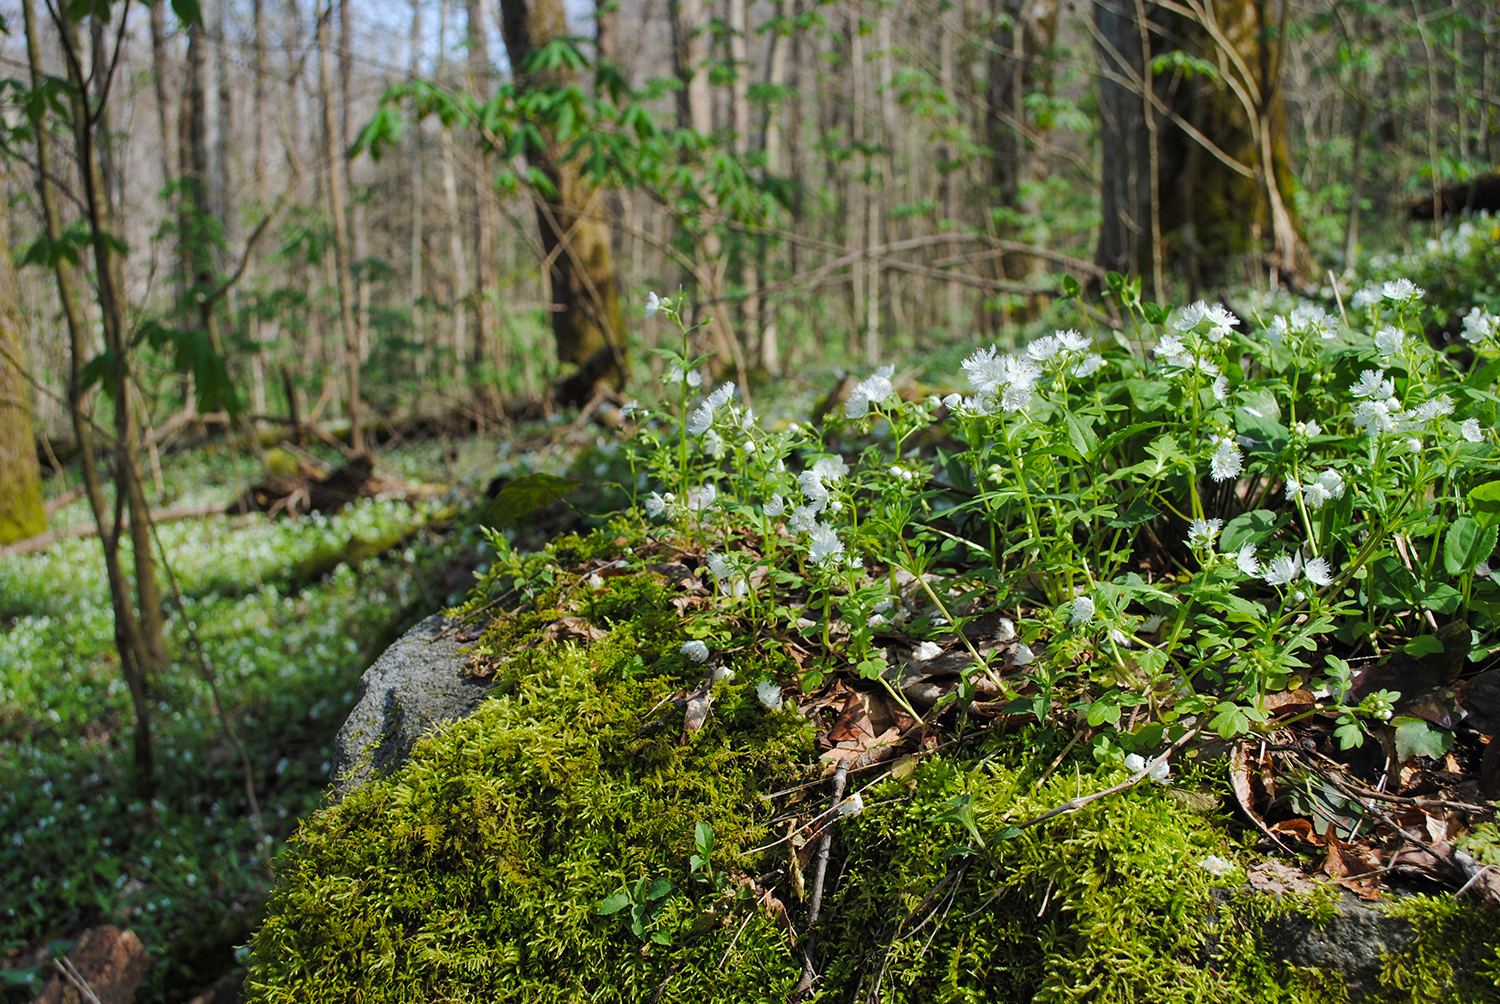 Fringed phacelia thrive on a boulder, no doubt supported by a layer of detritus and abundant rainfall during the winter and early spring.